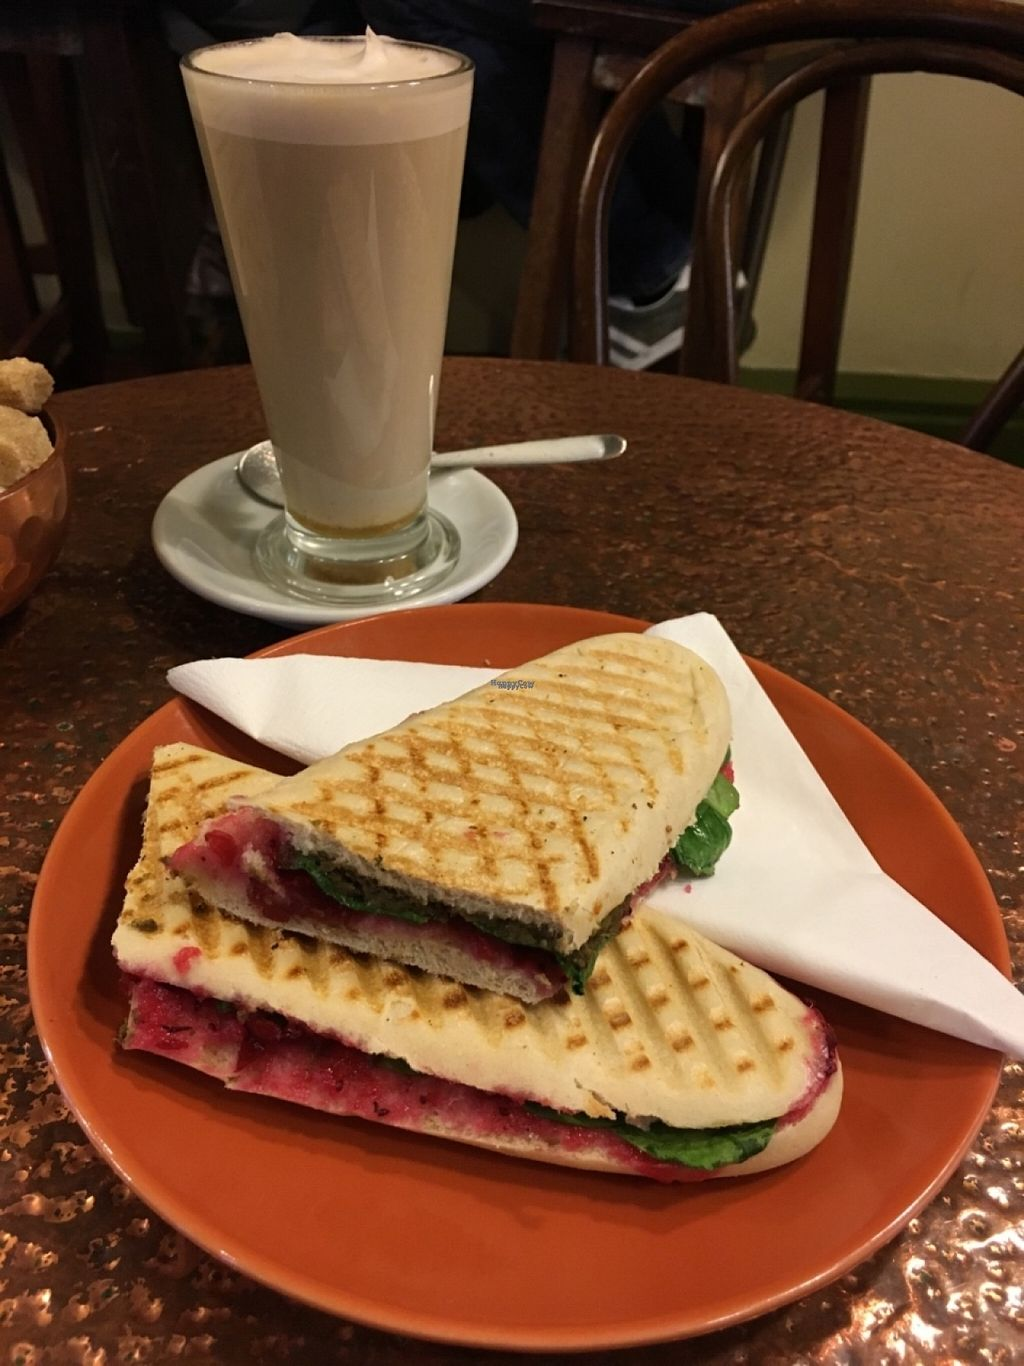 """Photo of Fox Cafe  by <a href=""""/members/profile/Libra77"""">Libra77</a> <br/>Lentil panini <br/> October 30, 2016  - <a href='/contact/abuse/image/69299/185973'>Report</a>"""